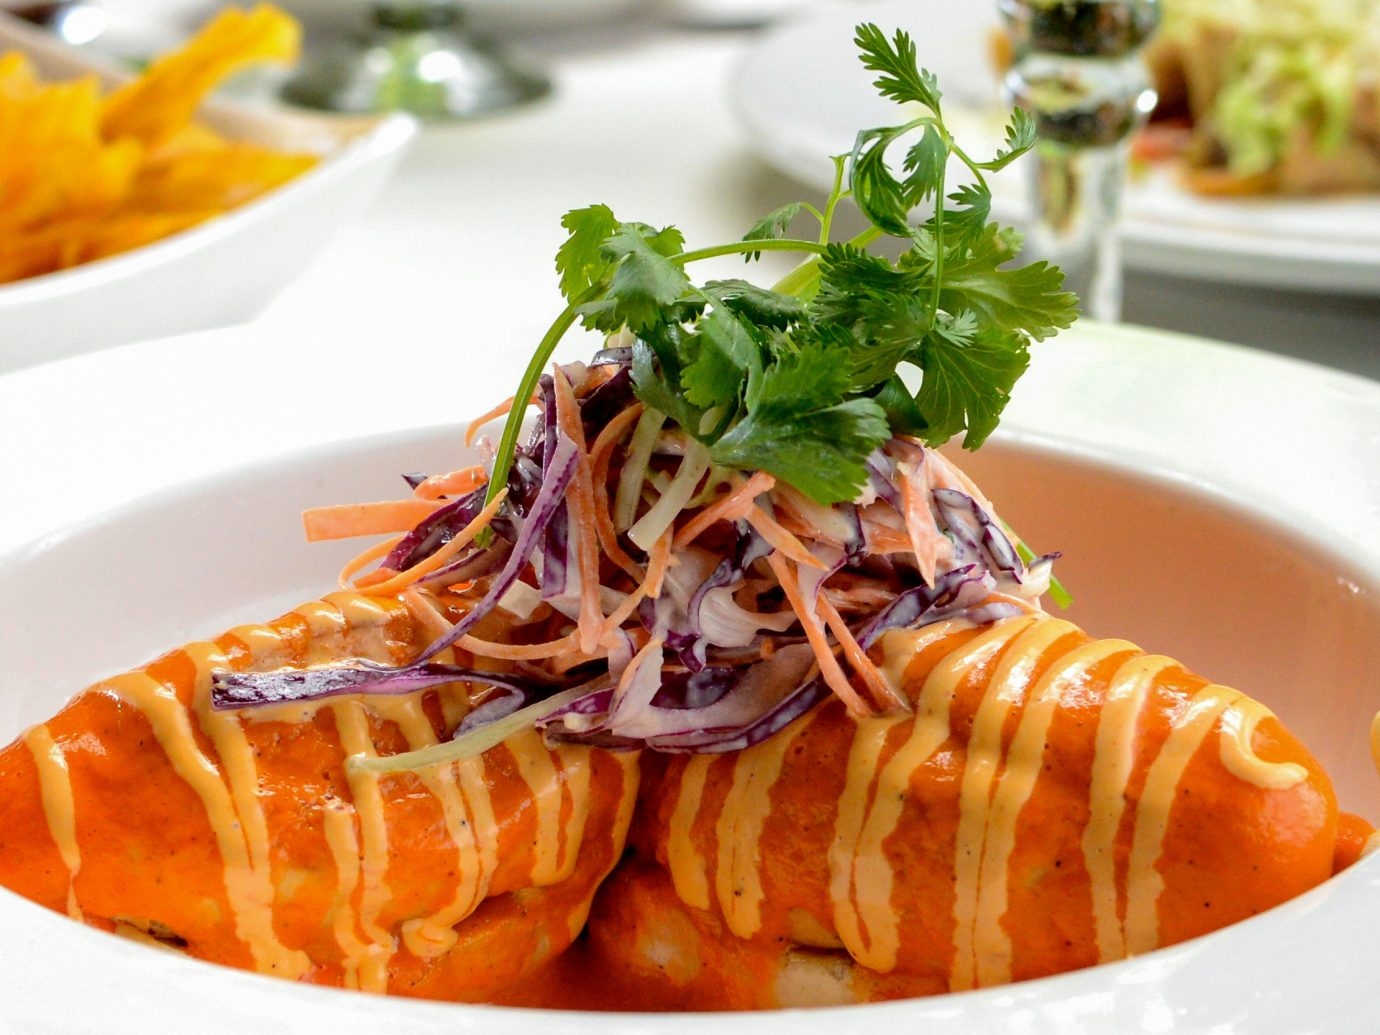 Food + Drink Mexico Puerto Vallarta plate food table dish cuisine meal asian food side dish thai food fried food recipe southeast asian food Seafood orange pasta meat piece de resistance